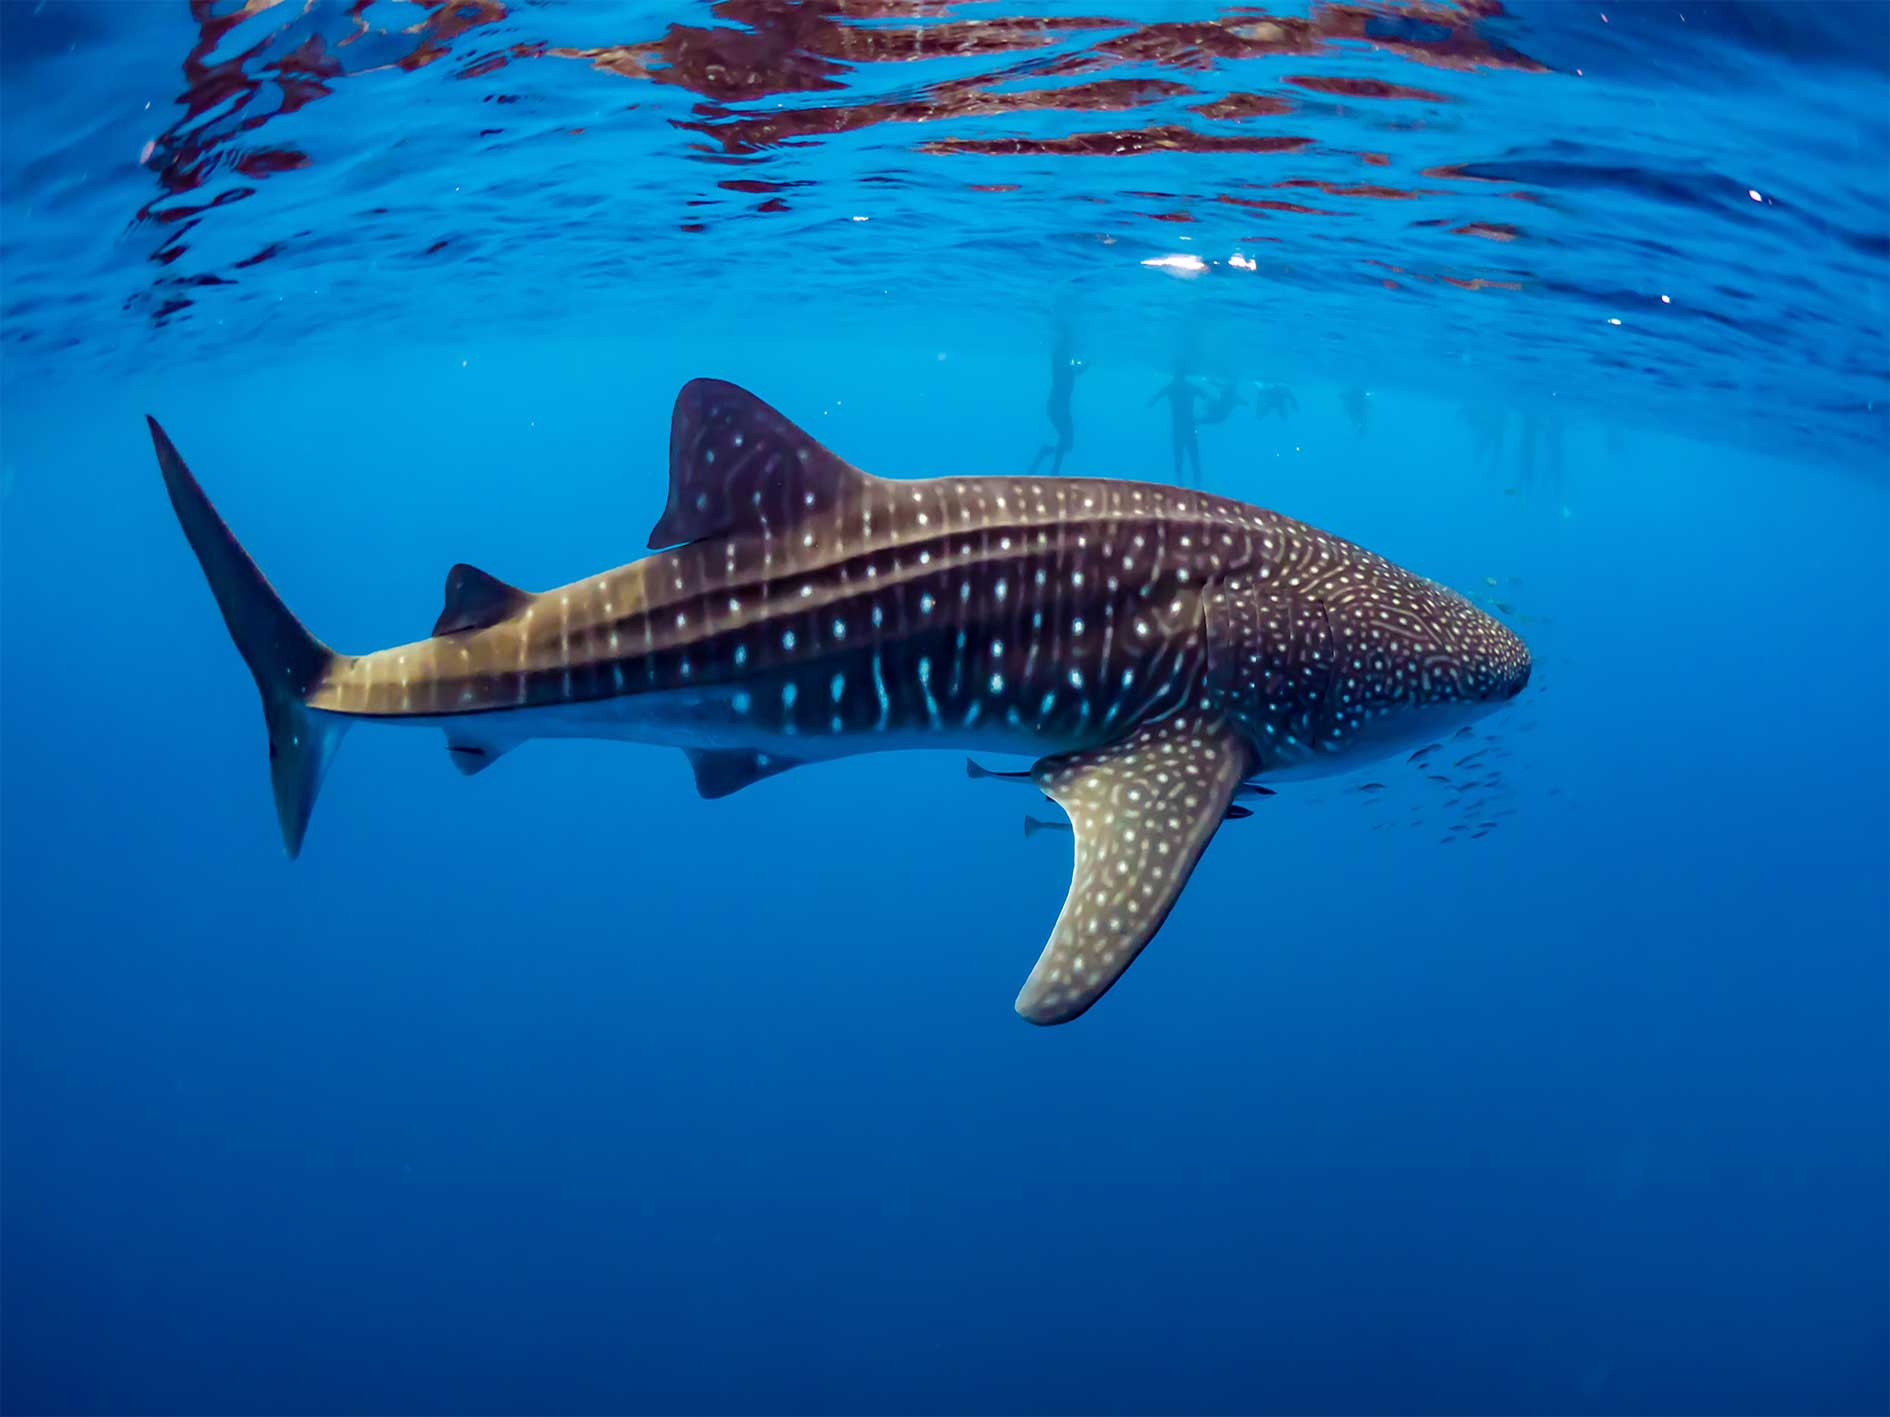 Whale Shark, tour, Swim, Snorkel, sea kayak, Whale Shark Adventure Package, Ultimate Safari, Reef and Beach, eco tour, Exmouth, Ningaloo Reef, Western Australia